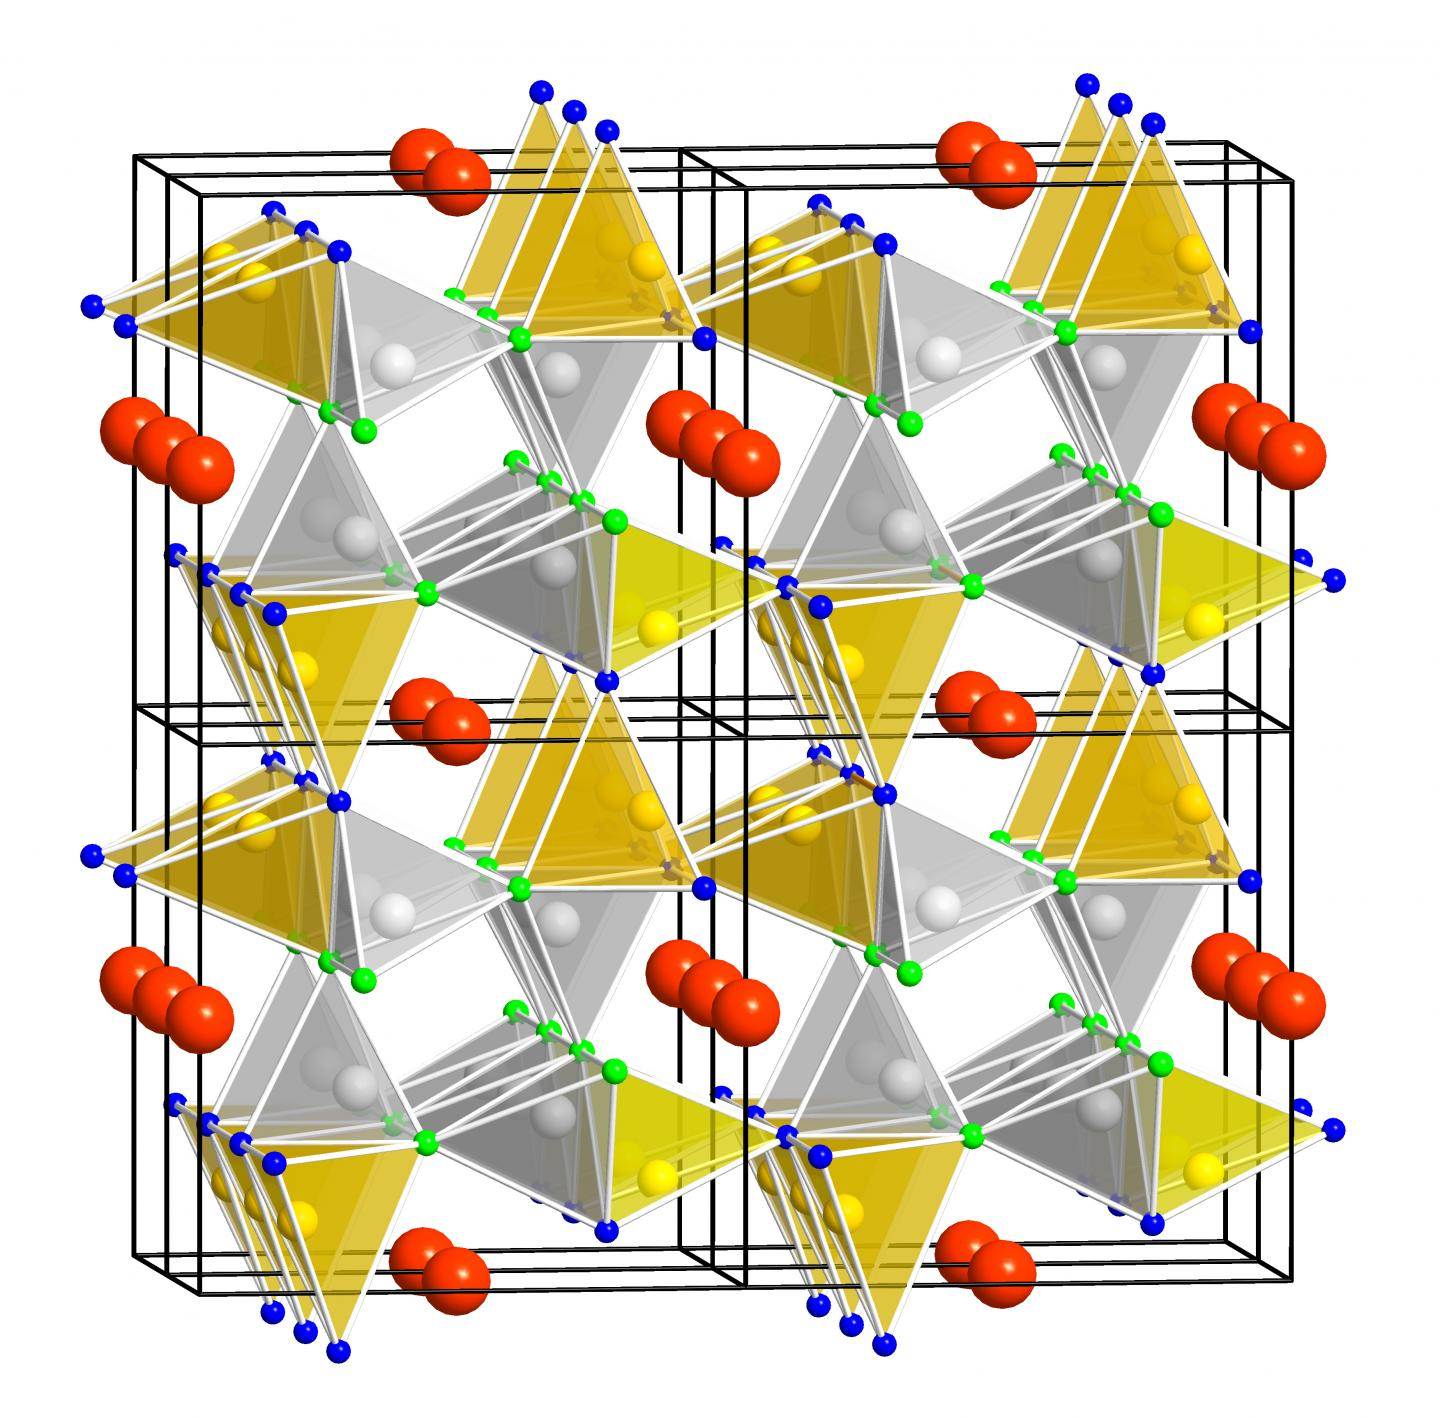 Crystal Structure of the SALON Phosphor